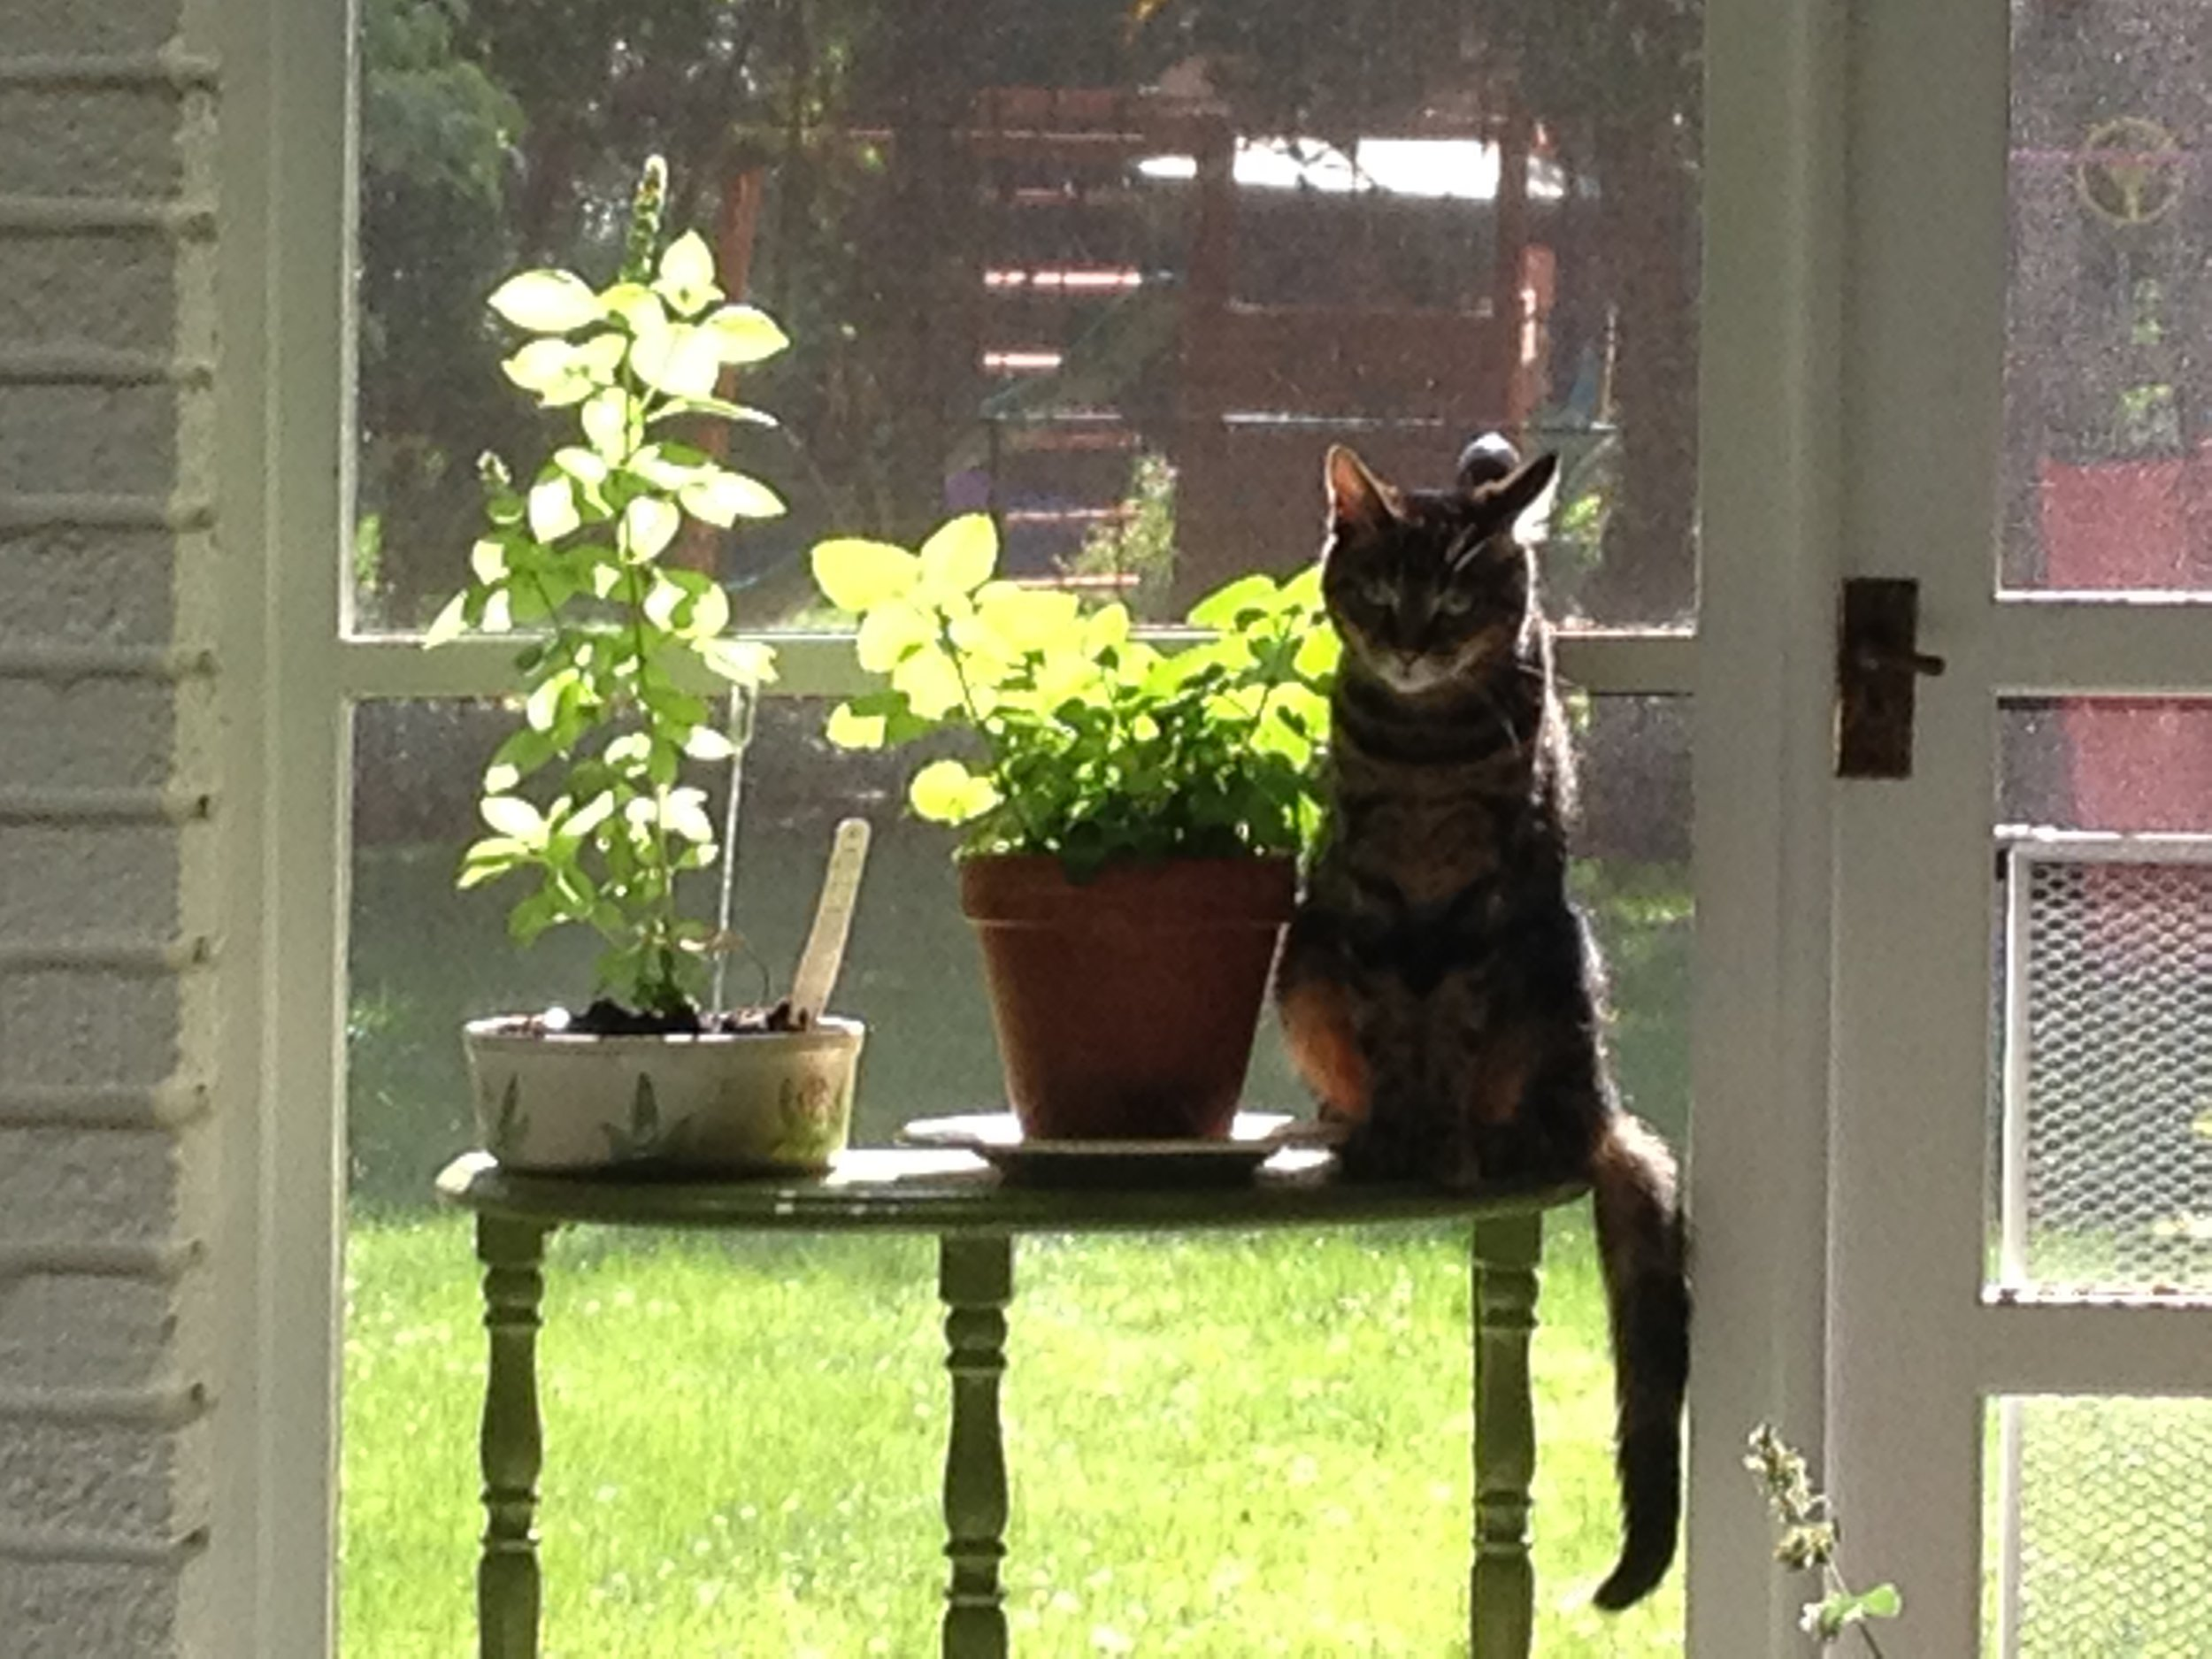 Lily Belle with the old pots, before somebody knocked one off and taught me, again, about impermanence.